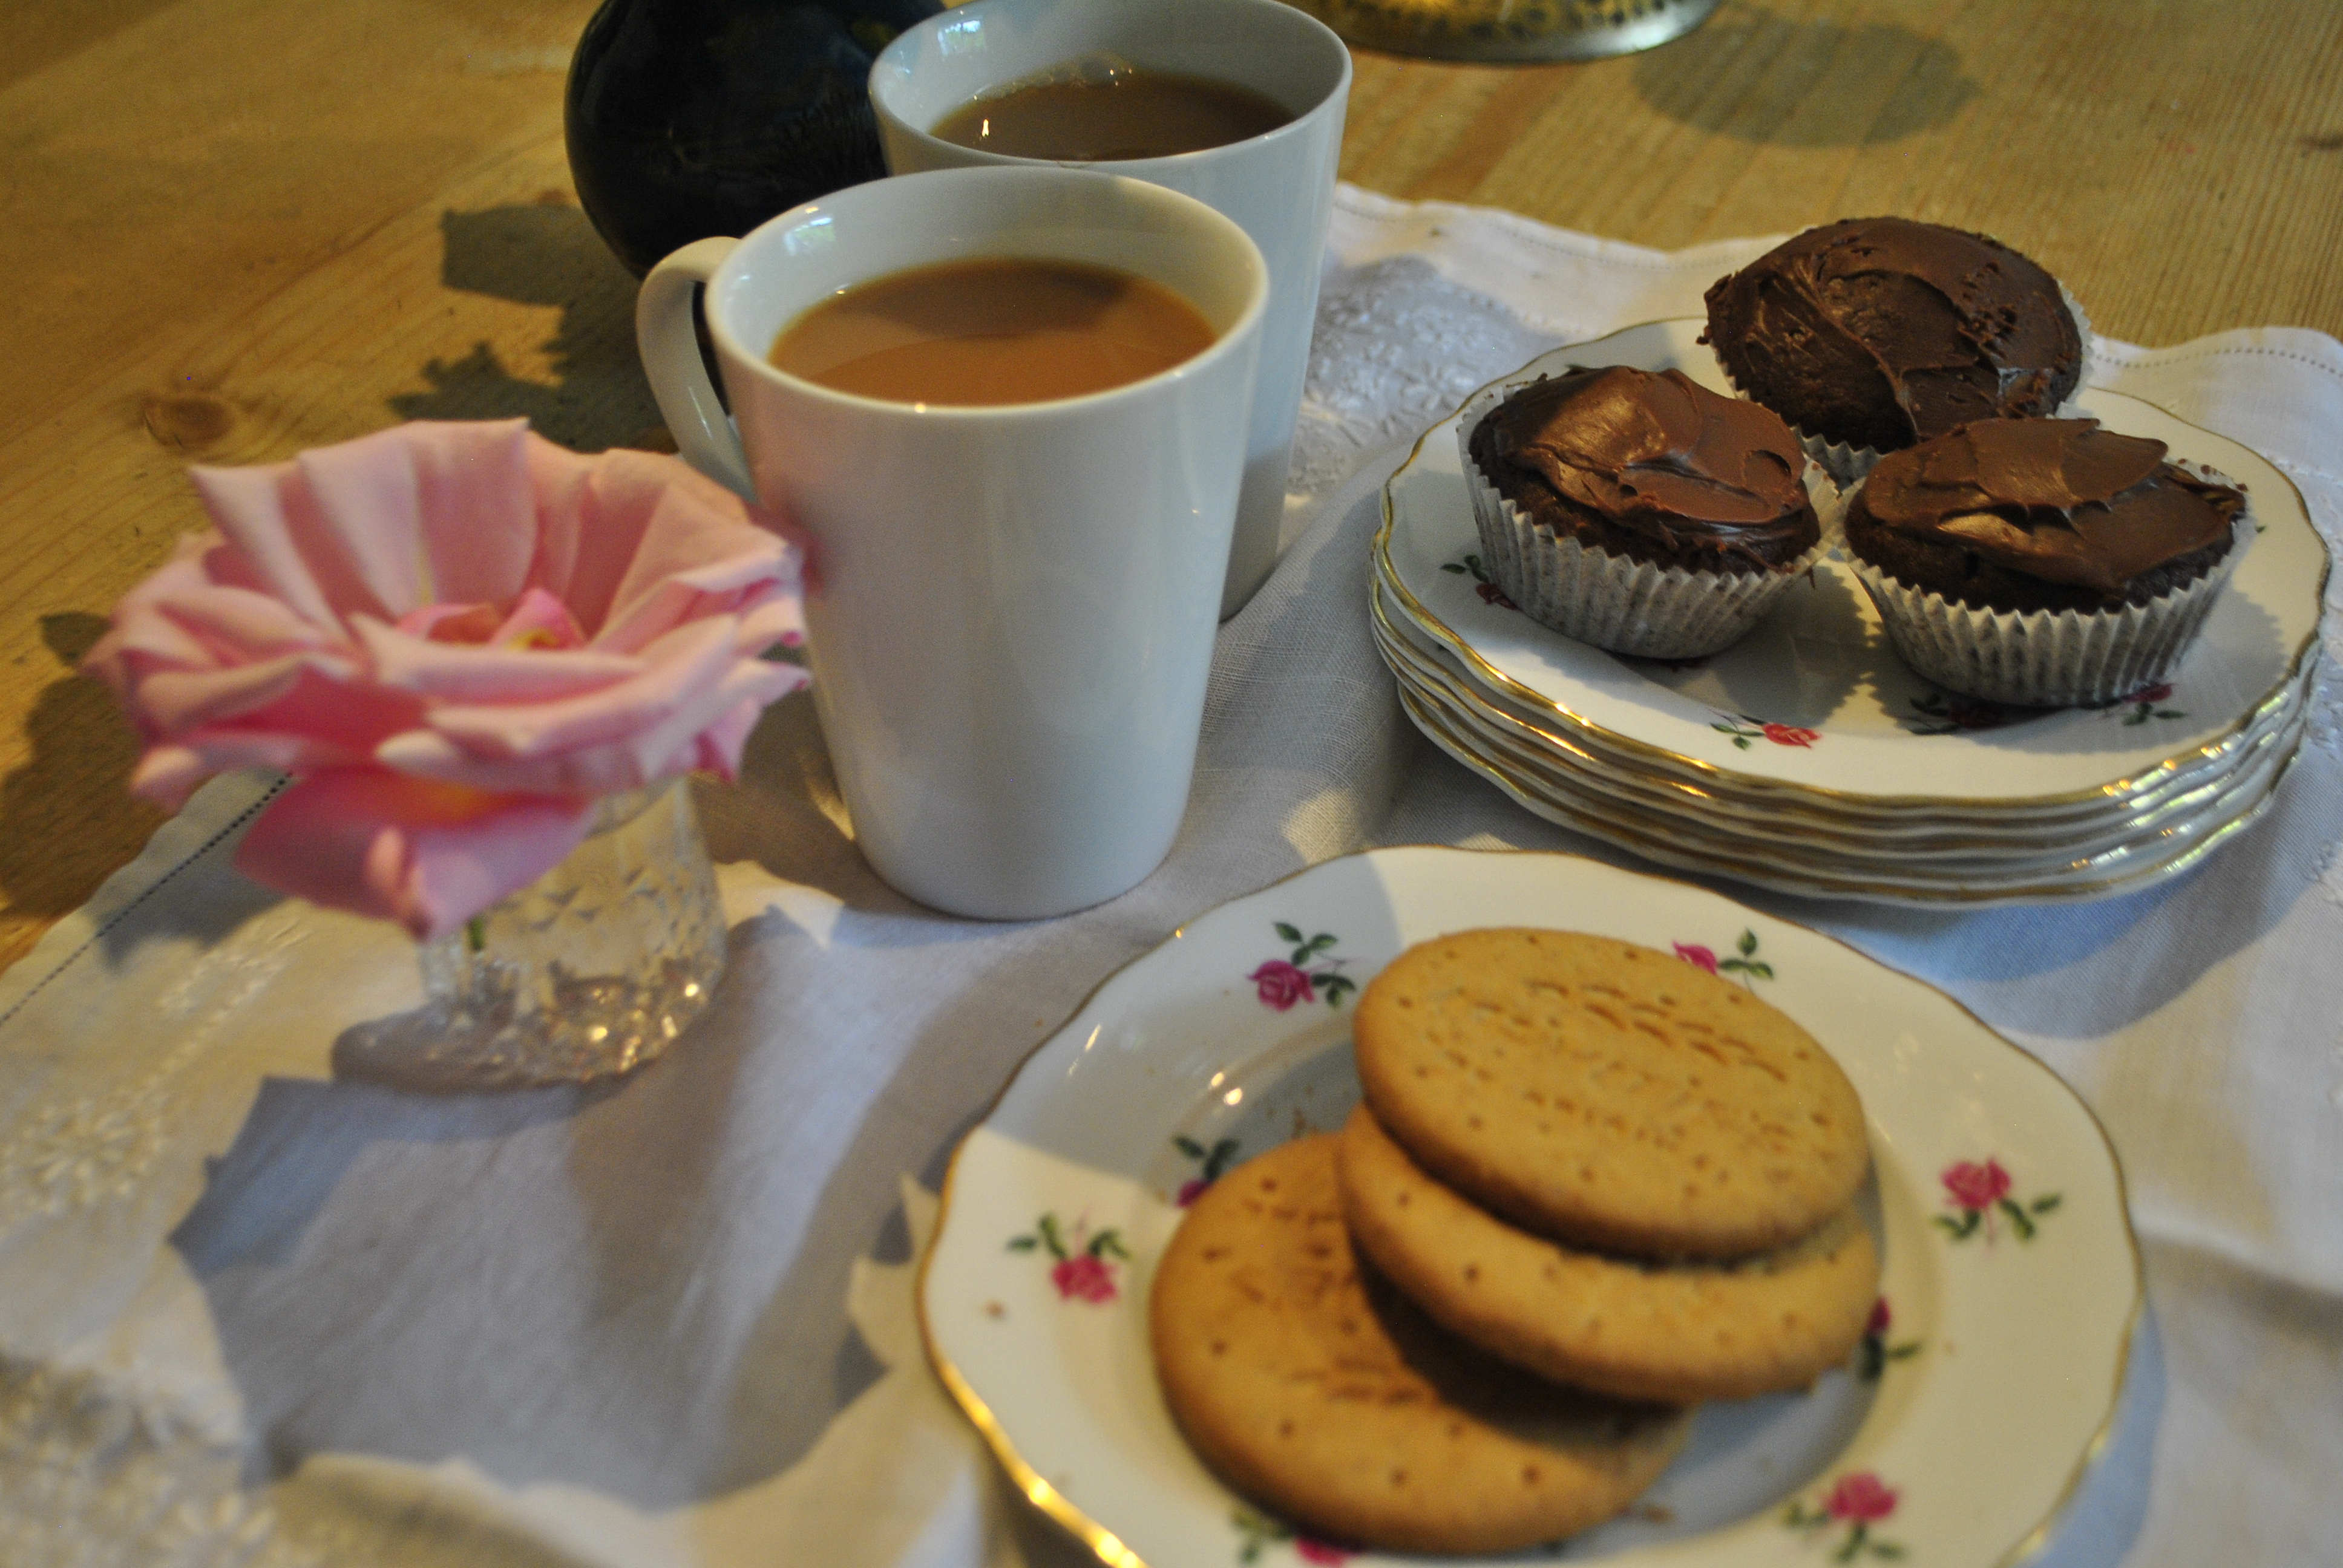 Some tea and cakes